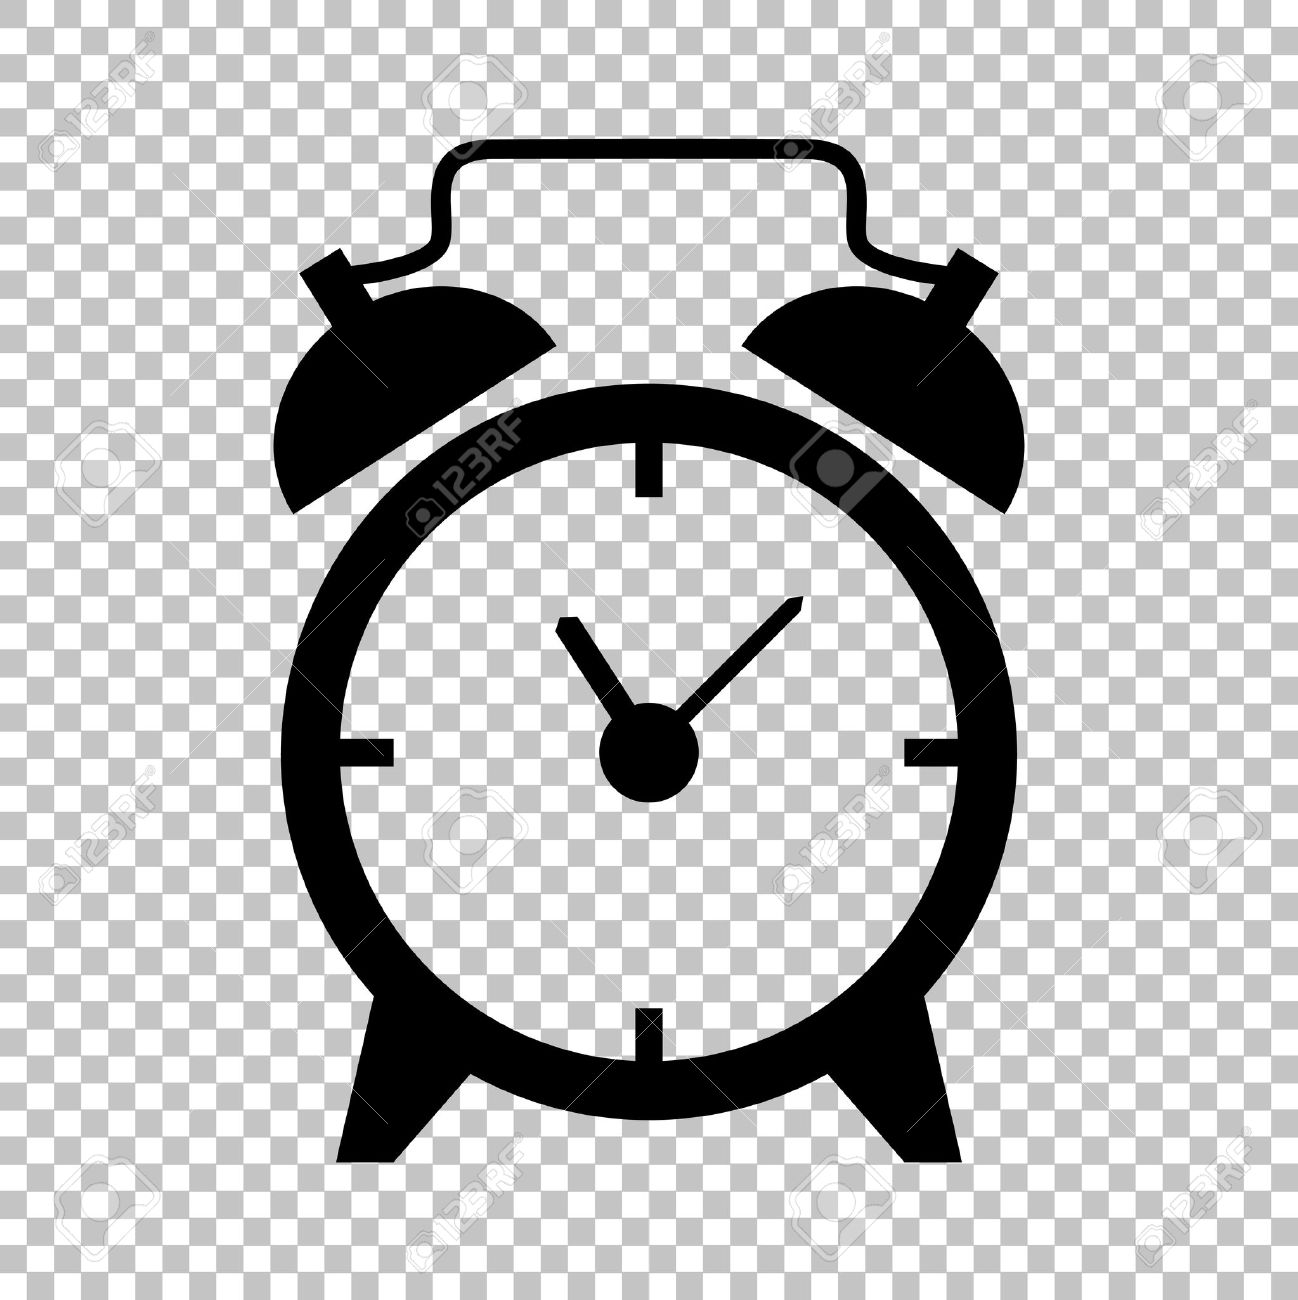 Clock Clipart Transparent Background.